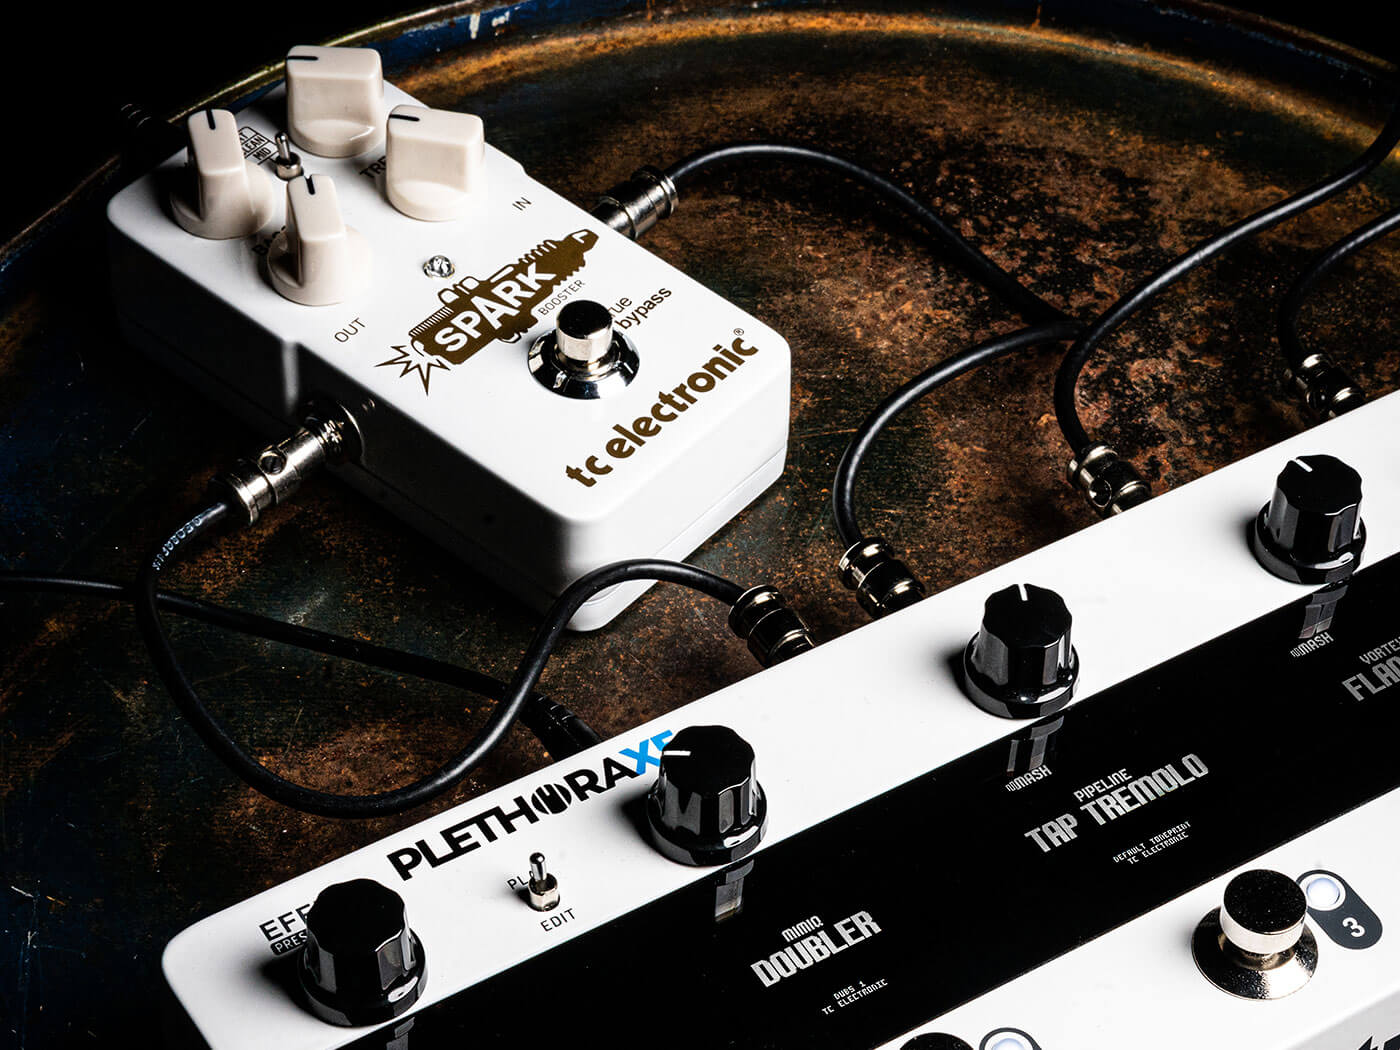 The Plethora X5 lets you drop your own pedals into its chain.